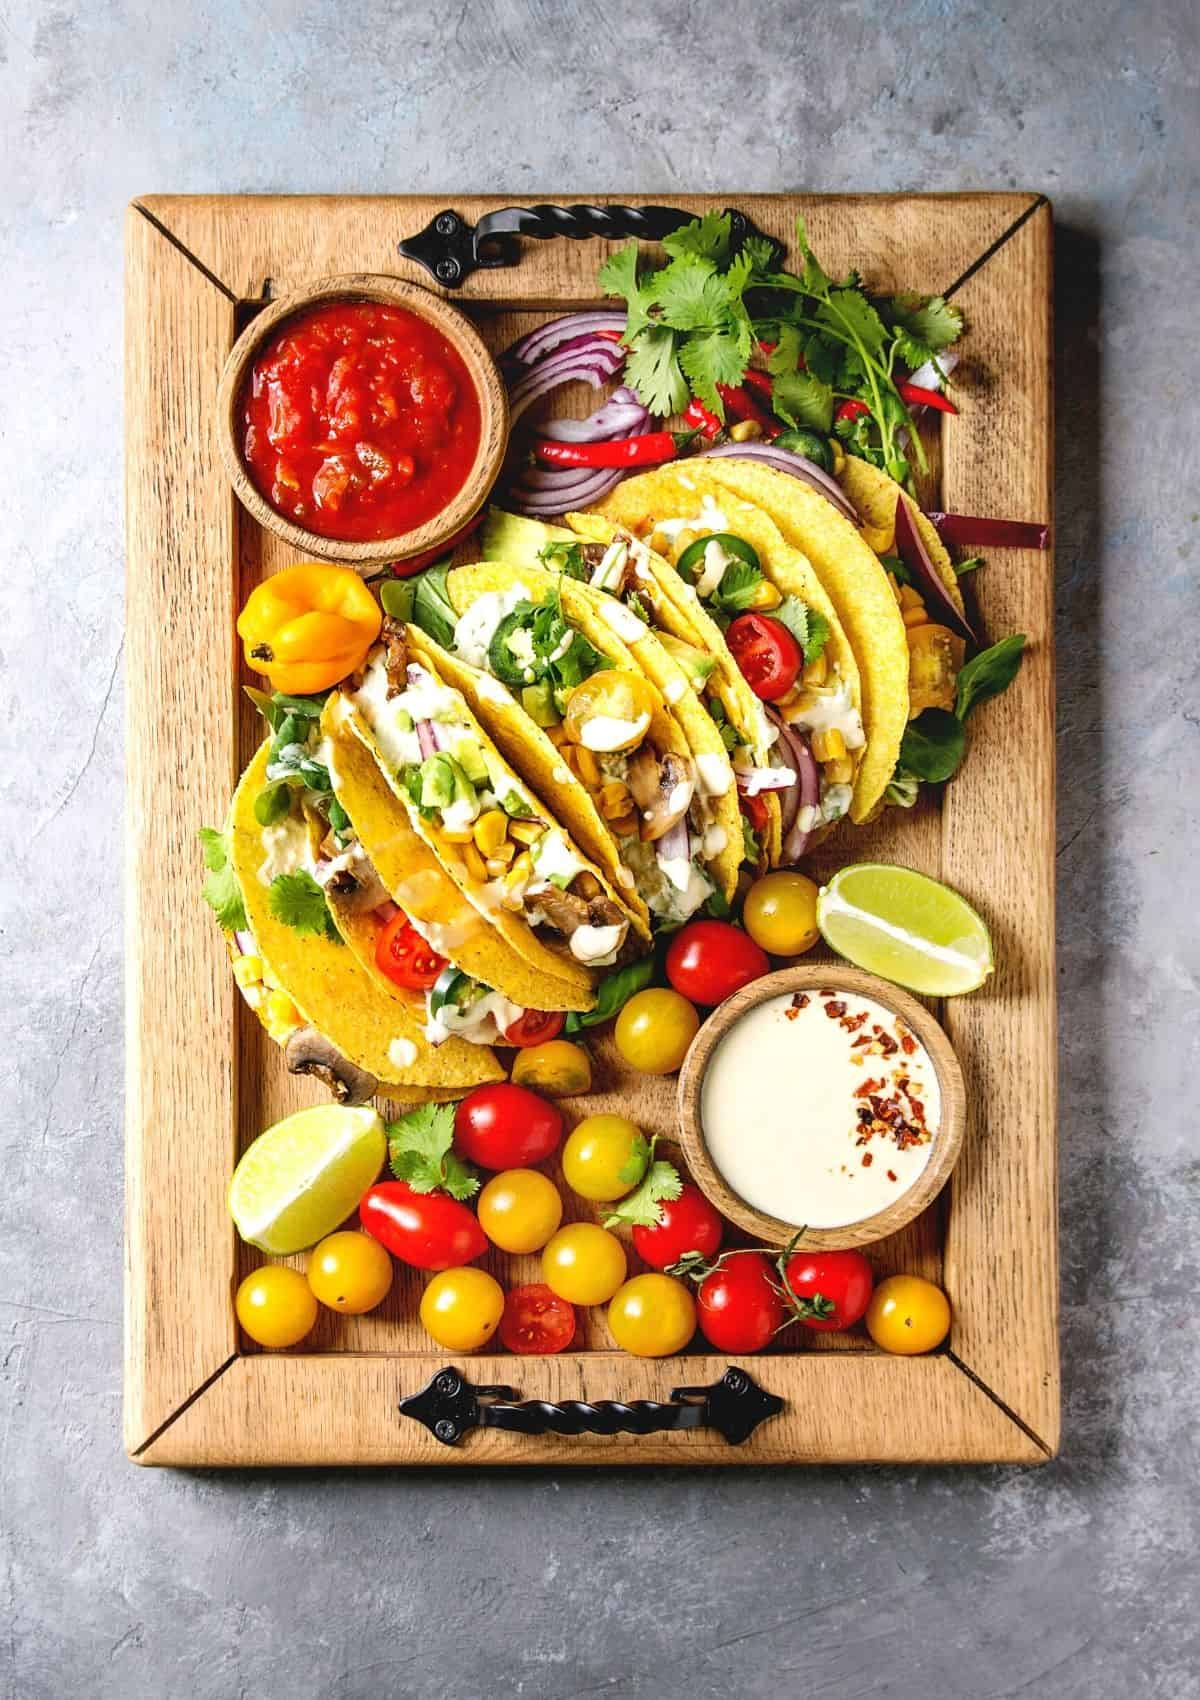 Vegetarian tacos with lots of taco toppings on wood cutting board, surrounded by taco toppings such as salsa, cilantro, onion, peppers, tomatoes, and a creamy dressing.